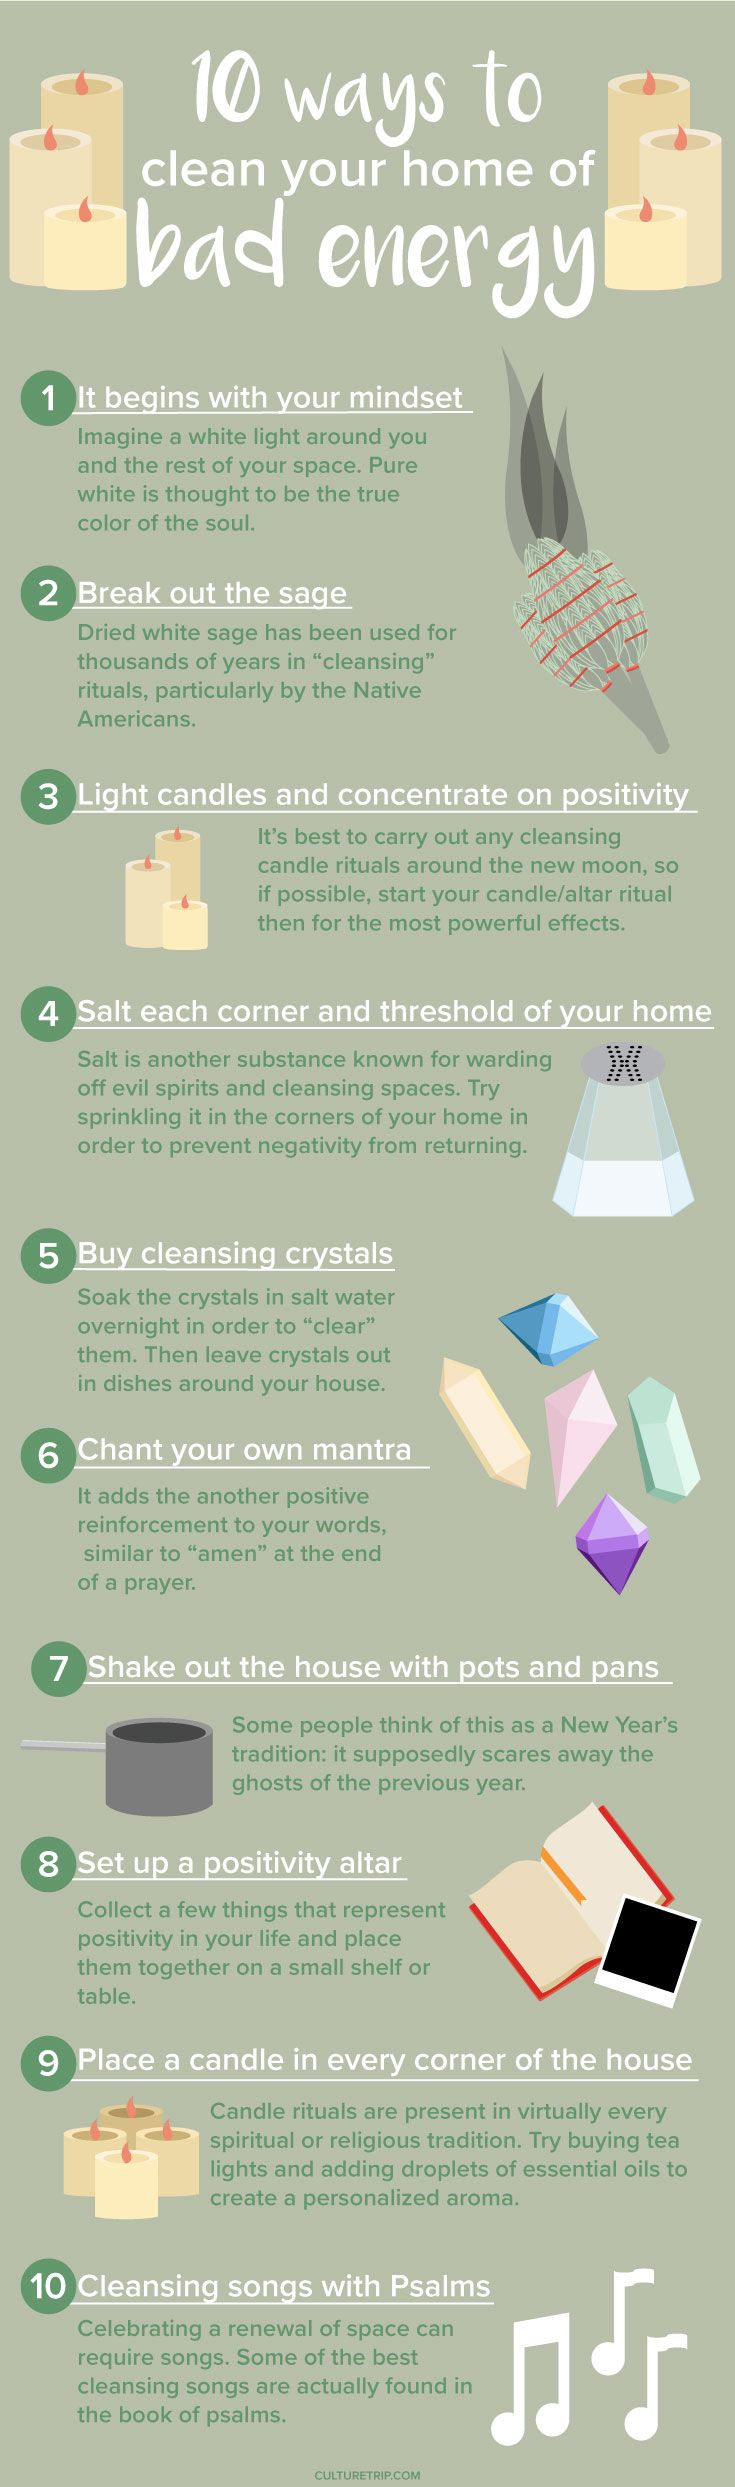 How To Clear Your Home of Bad Energy|Pinterest: @theculturetrip